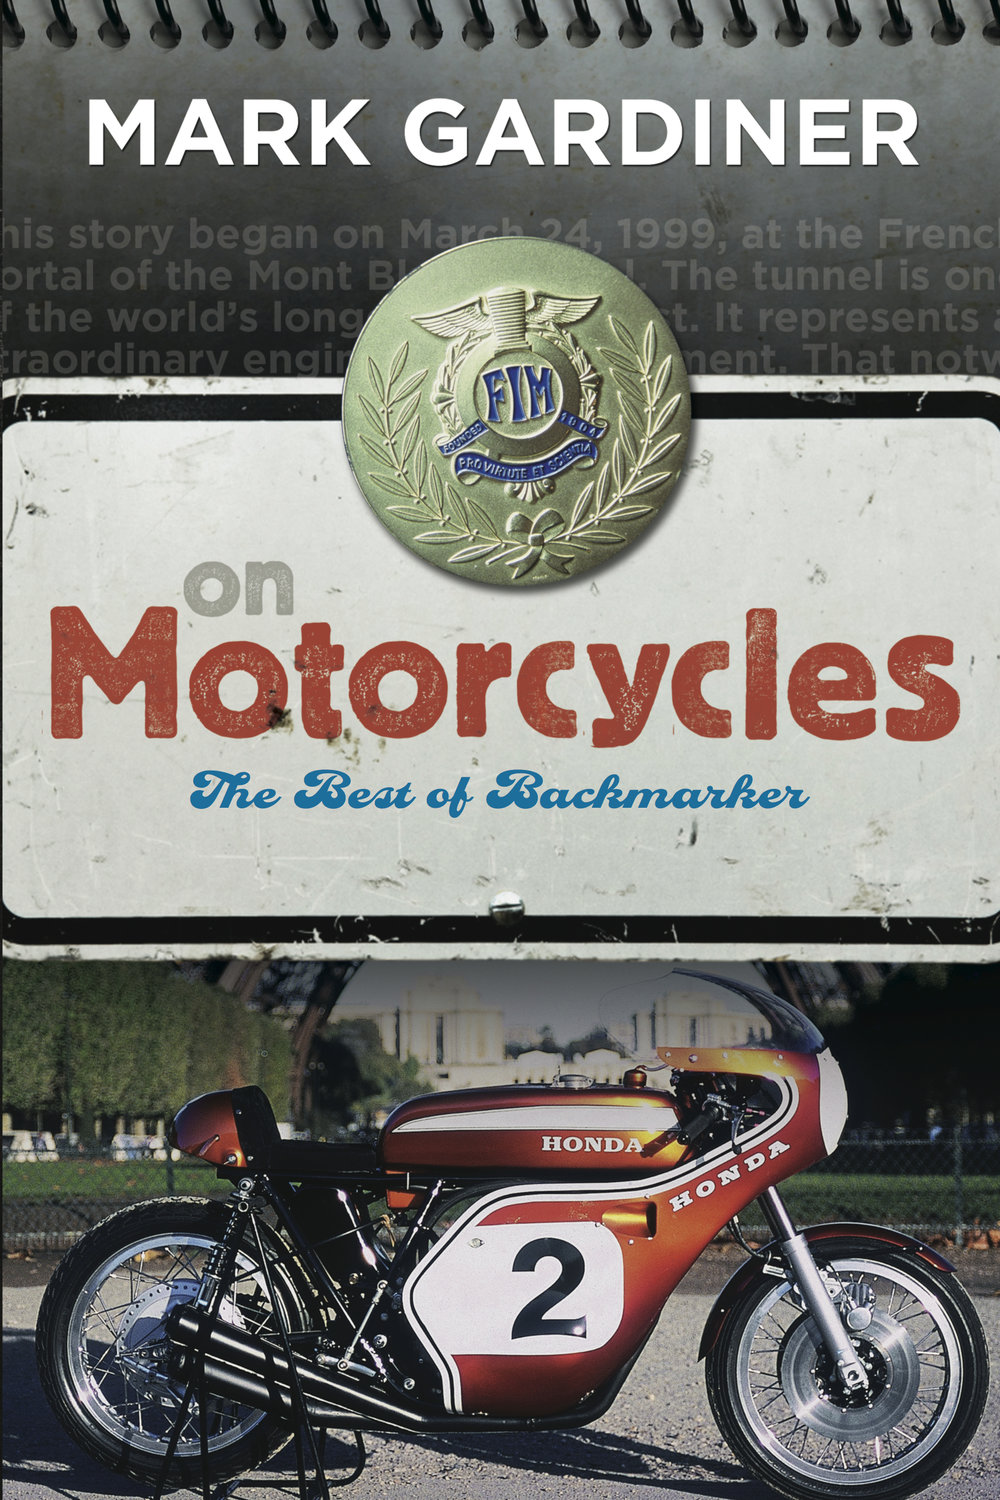 If you dig this kind of philosophical rambling about motorcycle racing, you'll love my book 'On Motorcycles: The Best of Backmarker'. Buy it on Amazon right now by clicking on the cover, or read it tonight on Kindle for less than ten bucks  here ..